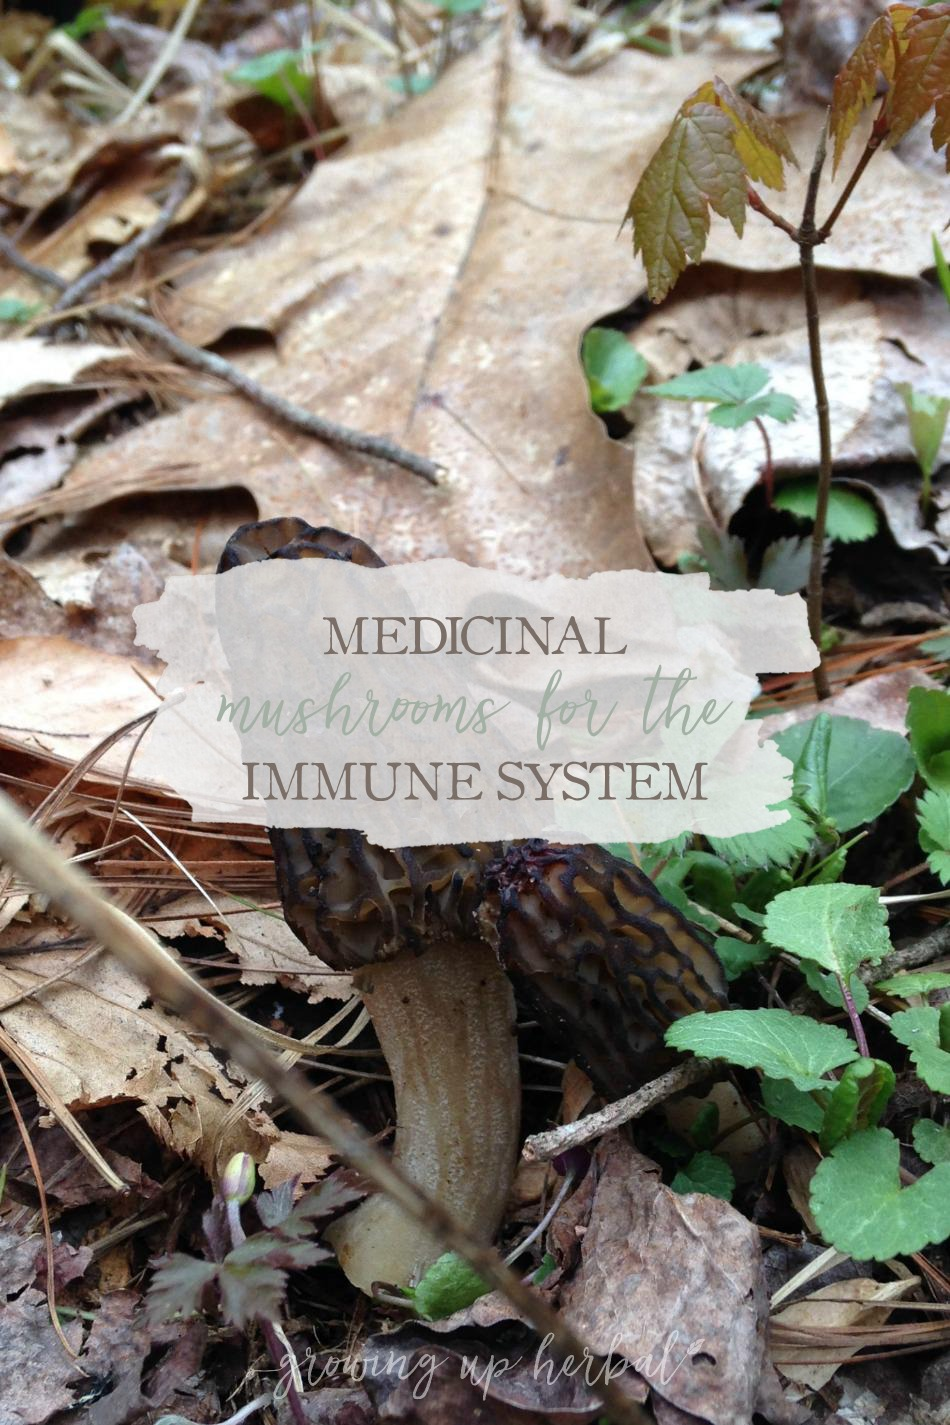 Medicinal Mushrooms for the Immune System   Growing Up Herbal   Learn about medicinal mushrooms and how they benefit your immune system!